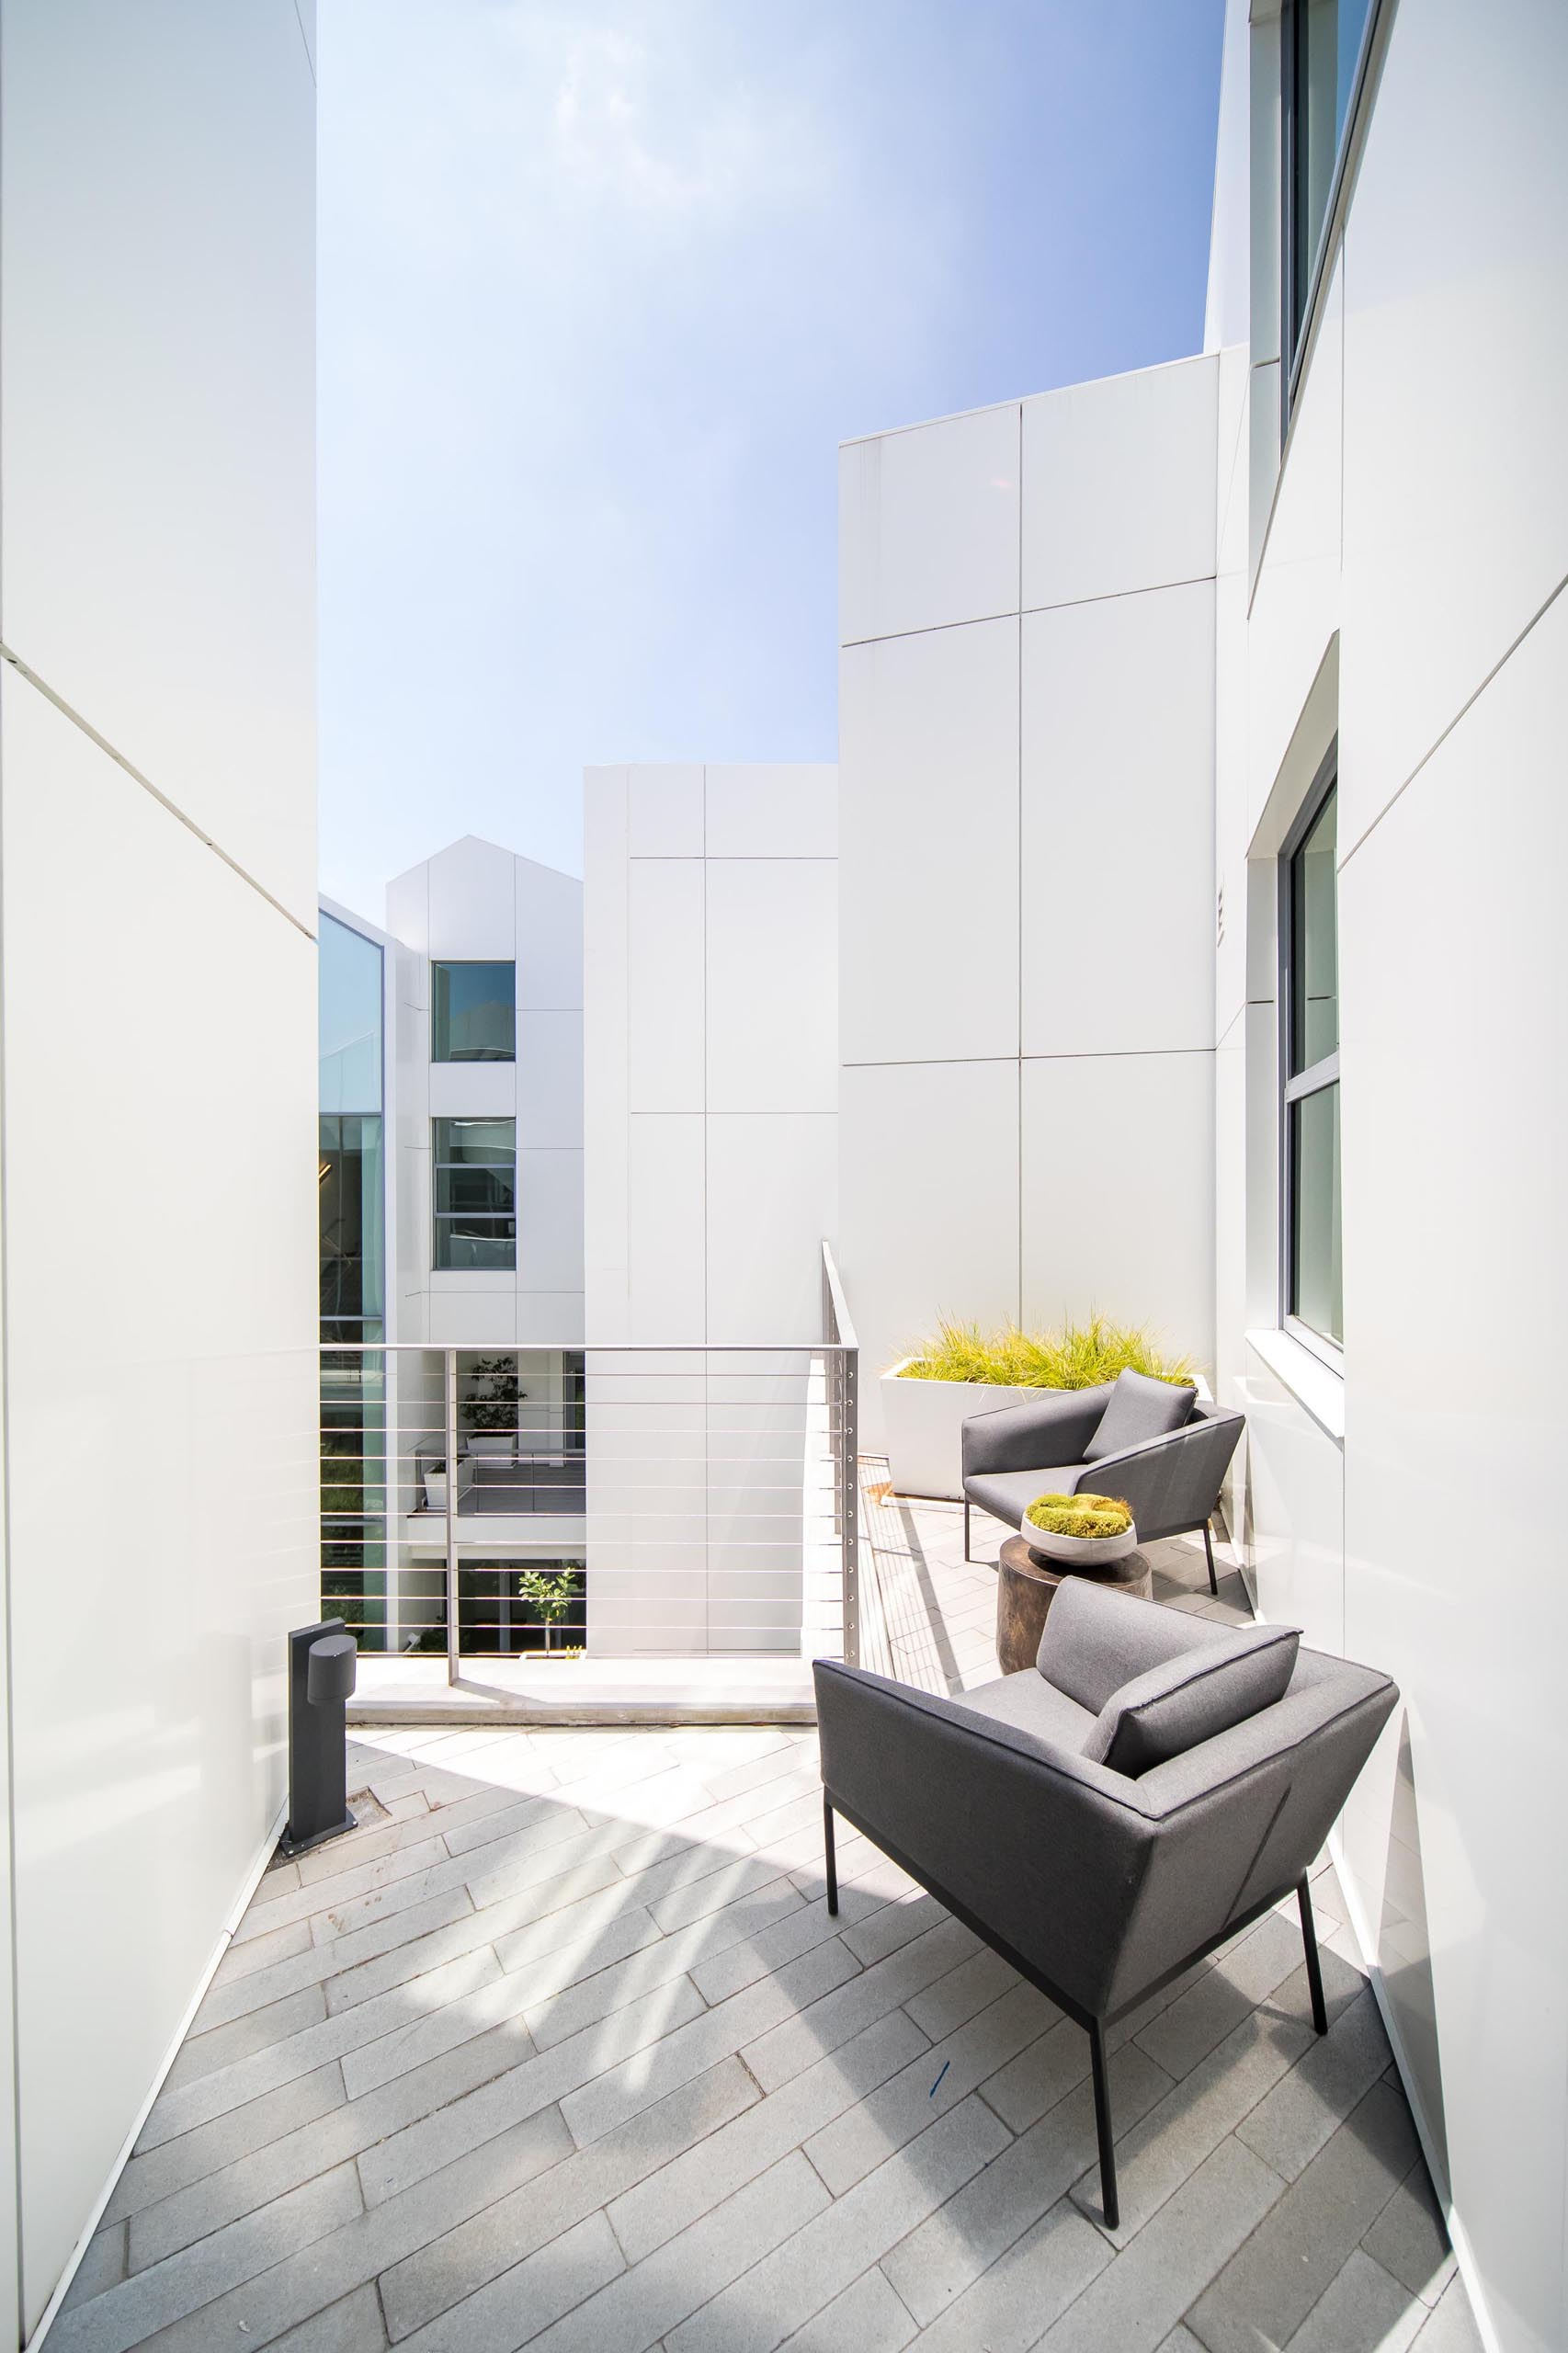 A small terrace with a pair of armchairs and a planter.